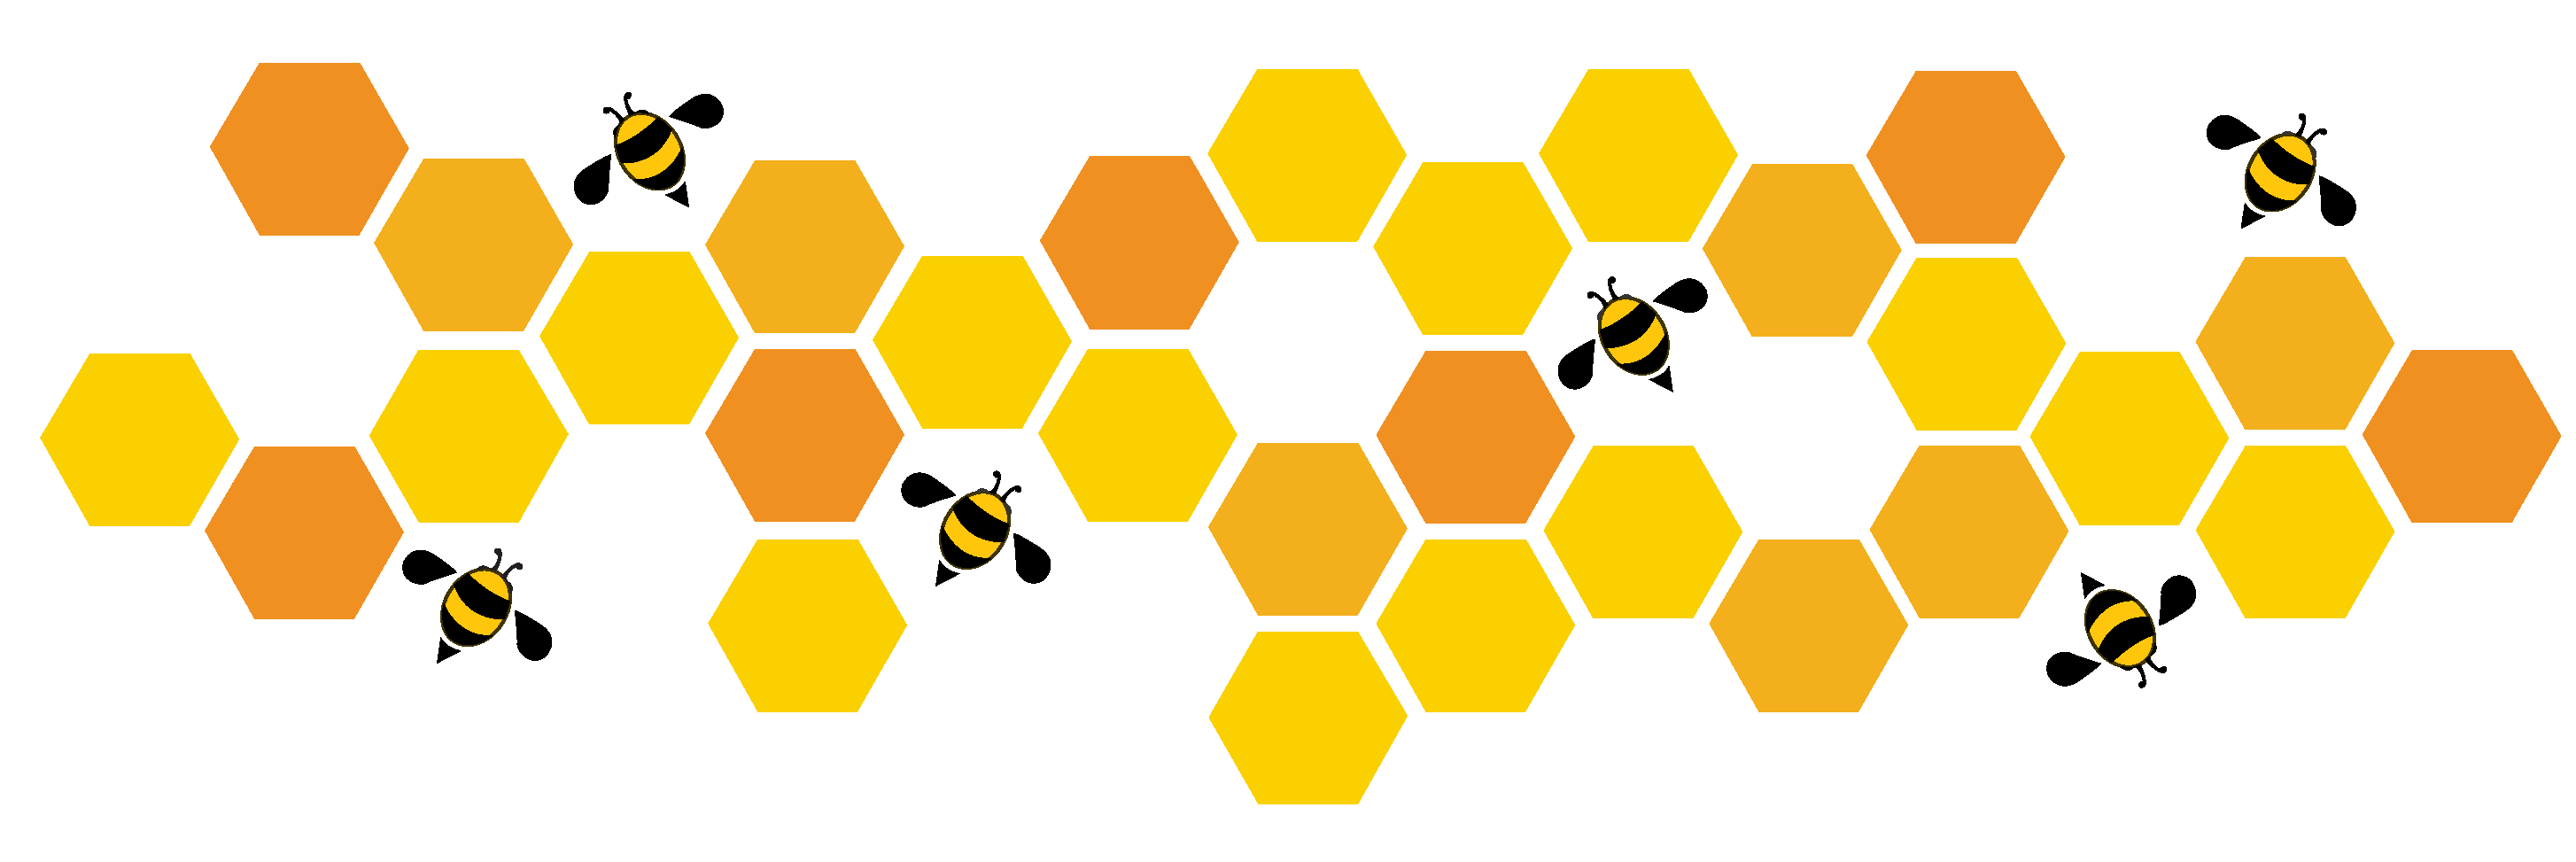 honeycomb in a shape of polygon